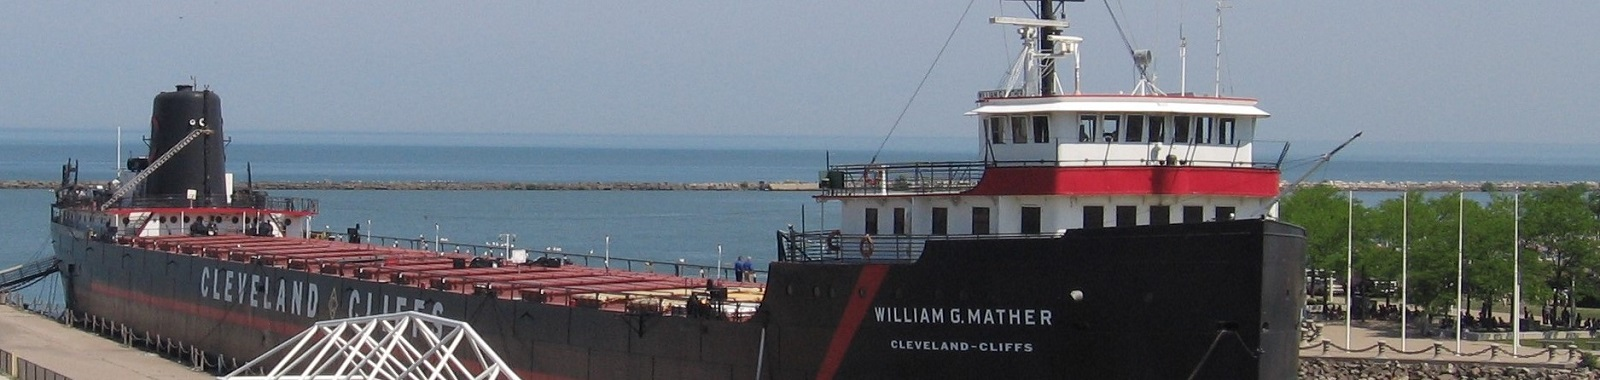 William G. Mather Cleveland Cliffs